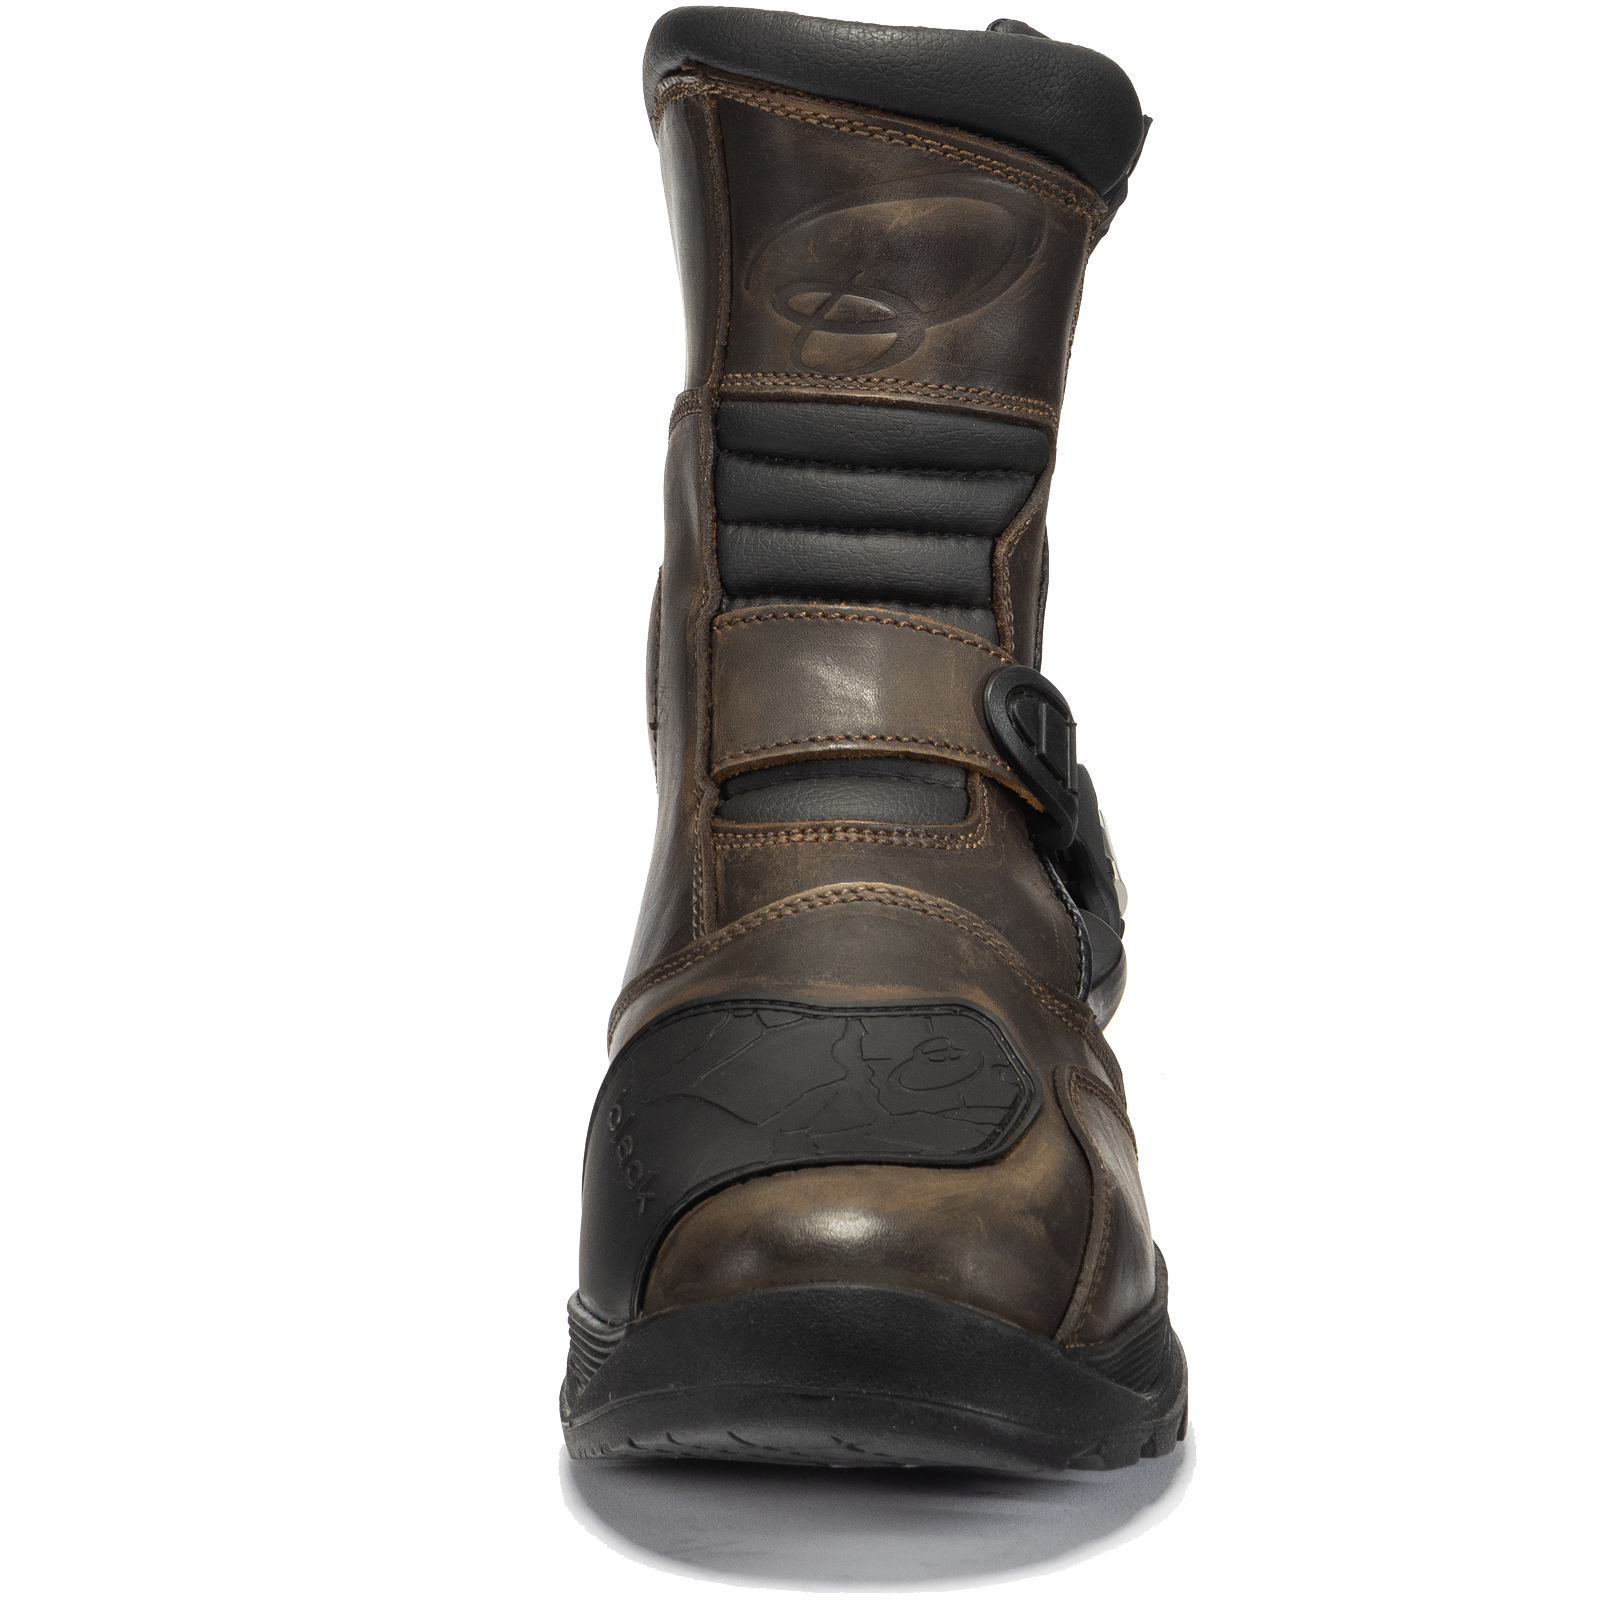 597e366c2ba Details about Black Rogue Adventure Mid Waterproof Motorcycle Boots Touring  Leather Motorbike